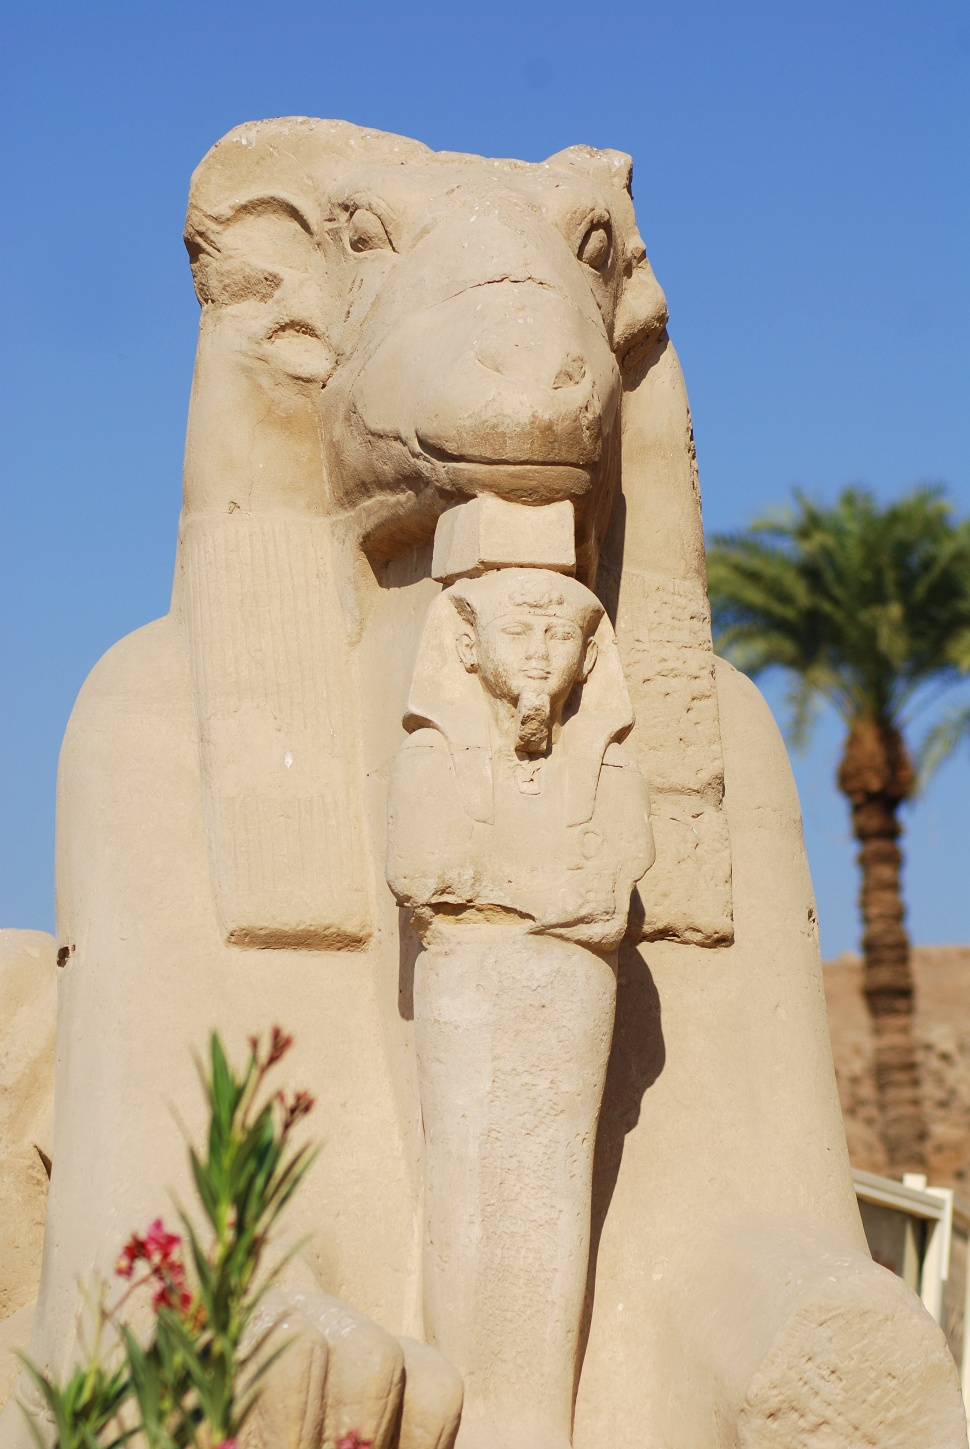 Avenue of ram-headed sphinxes, Temples of Karnak, Luxor, Egypt